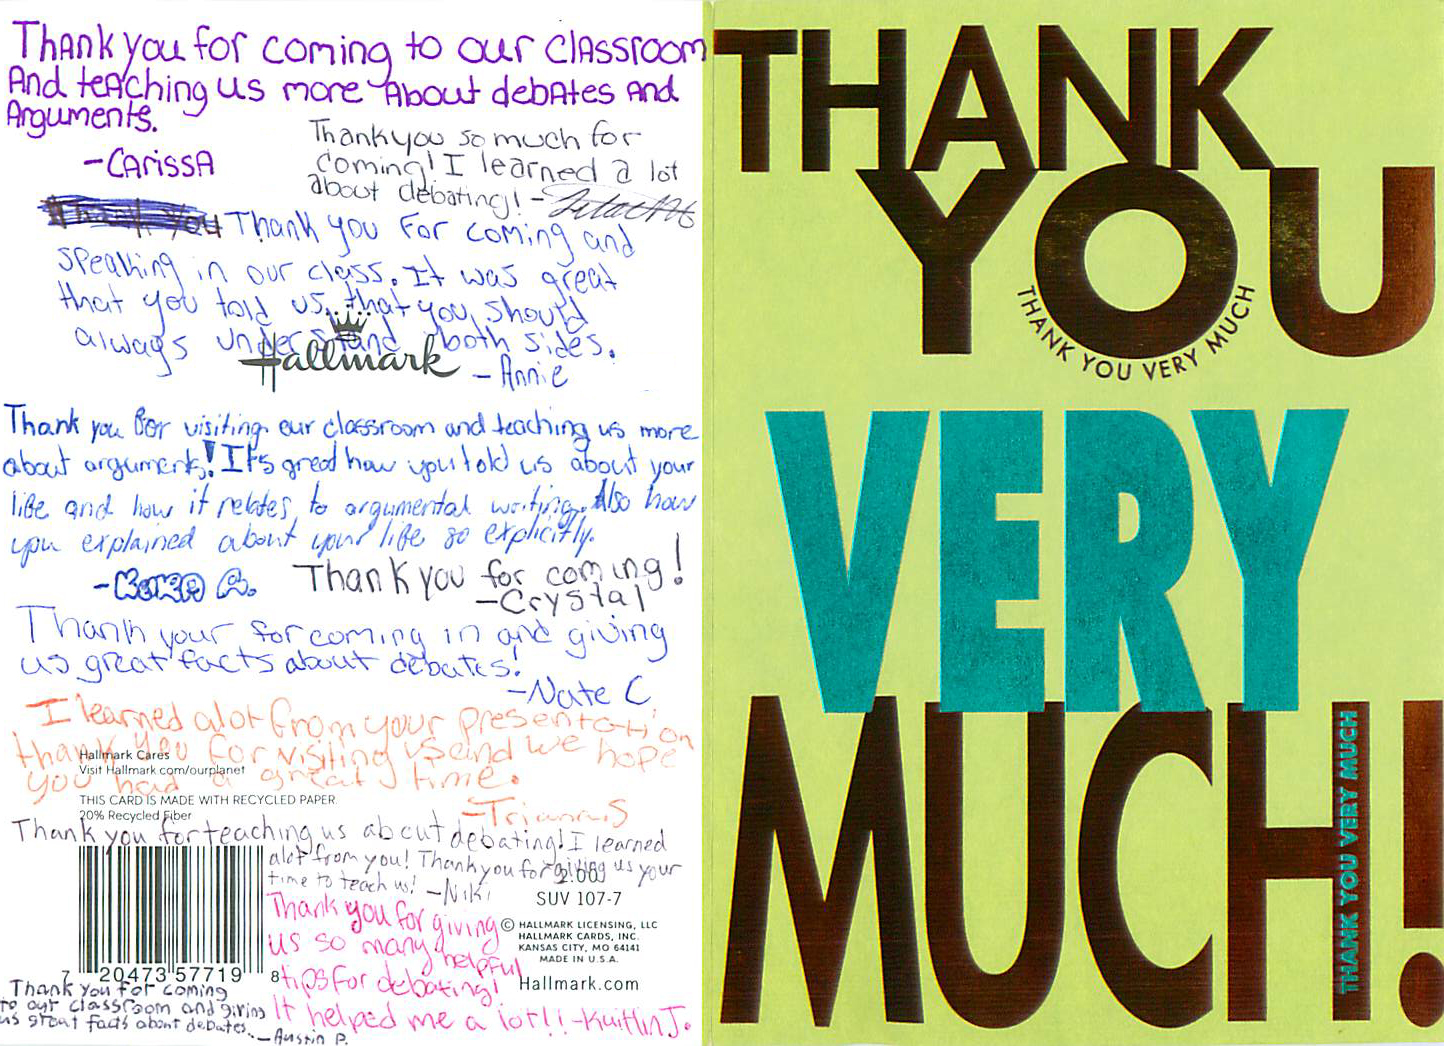 stuart-middle-schoot-thank-you-note-for-ded-00679862x9e2fa_page_1